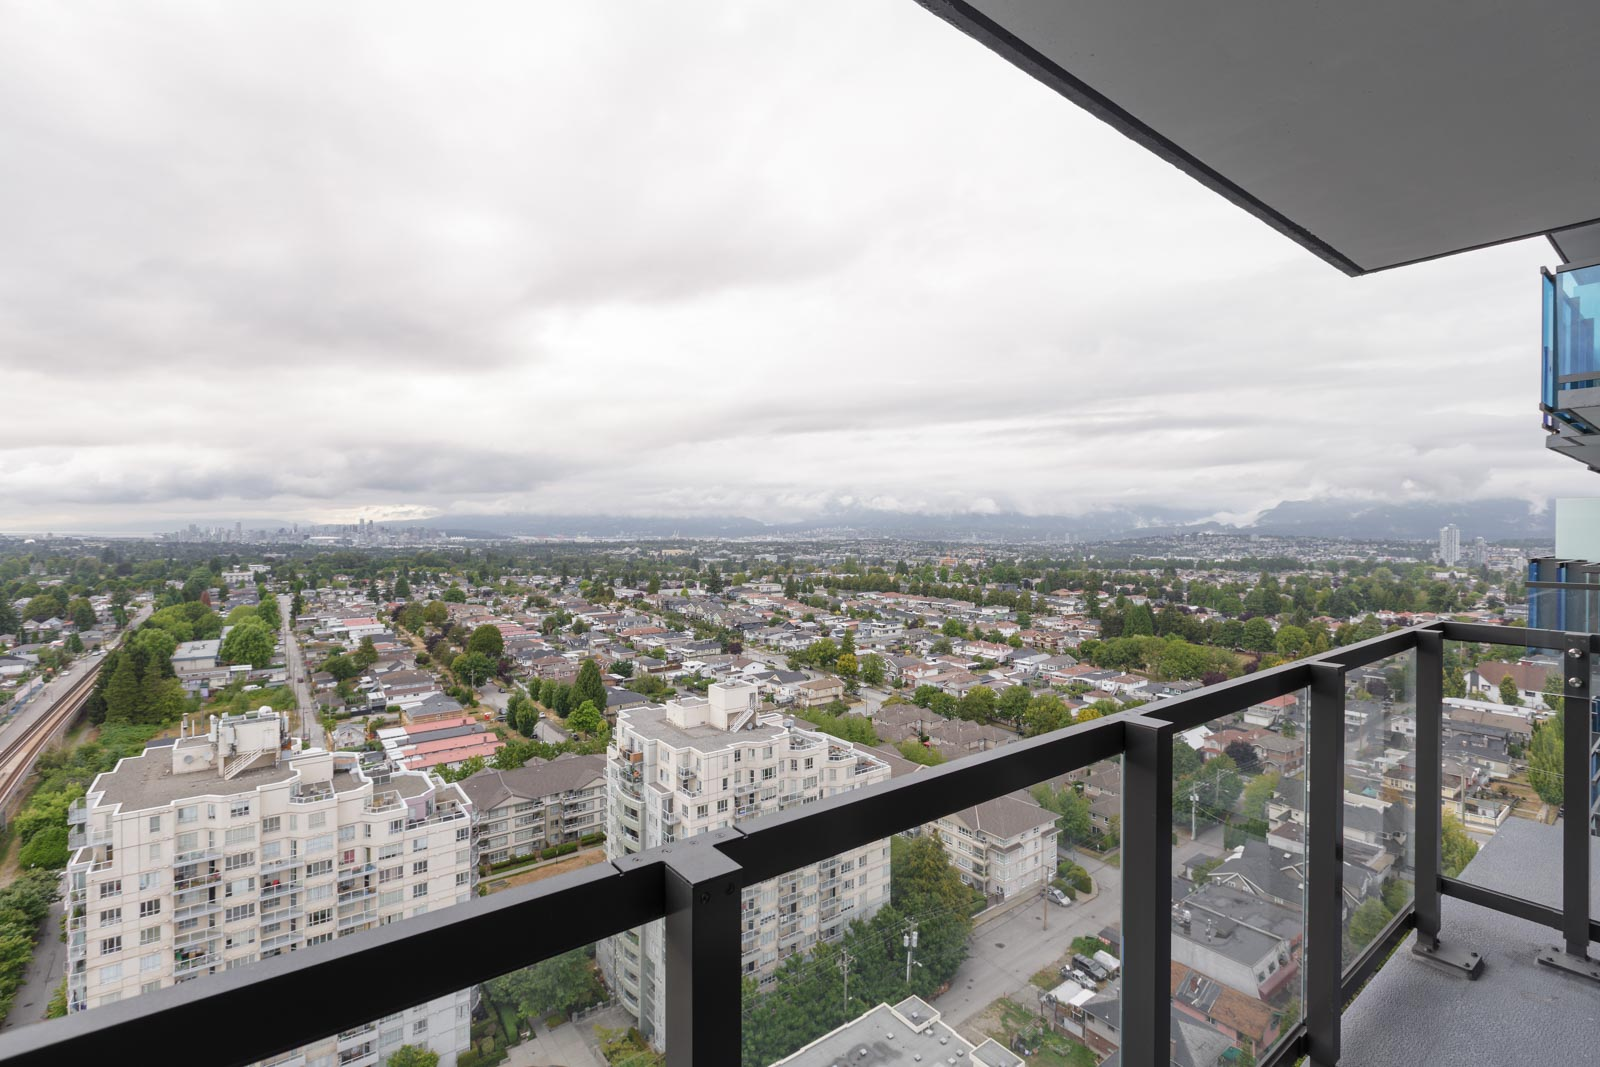 View of the the city skytrain